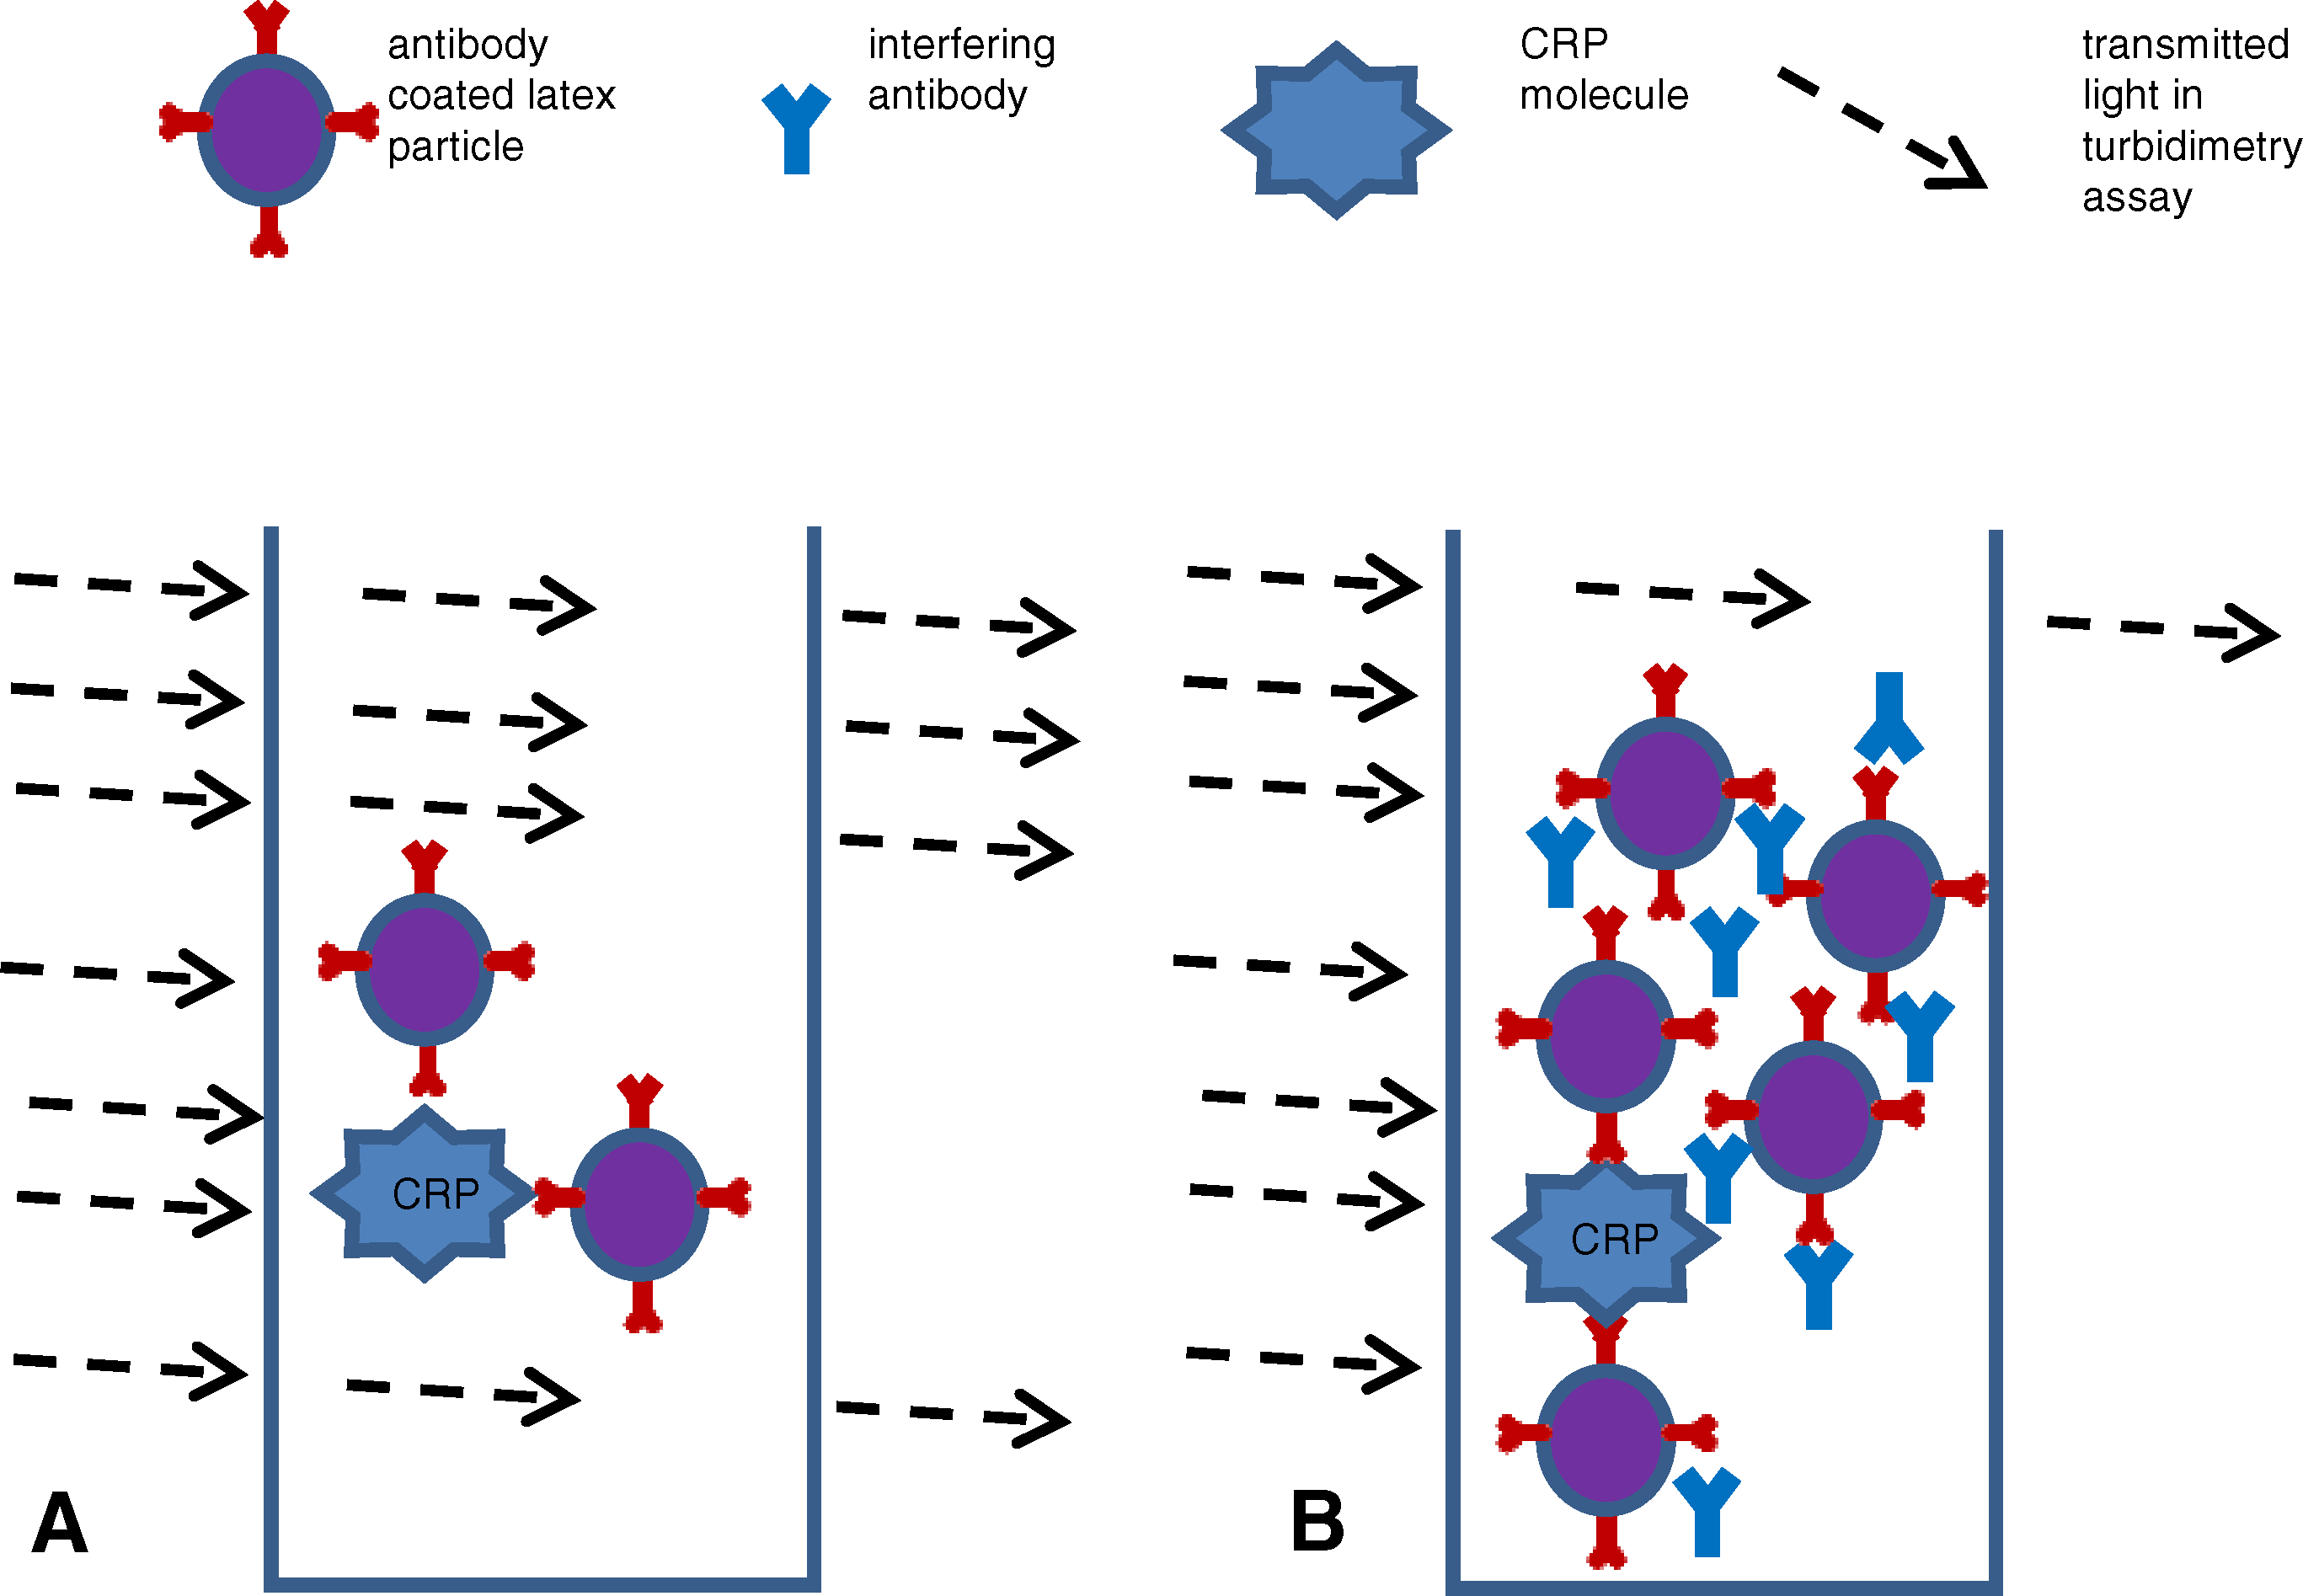 Schematic Illustrating One Possible Mechanism of How Antibody Interferes with PETIAs